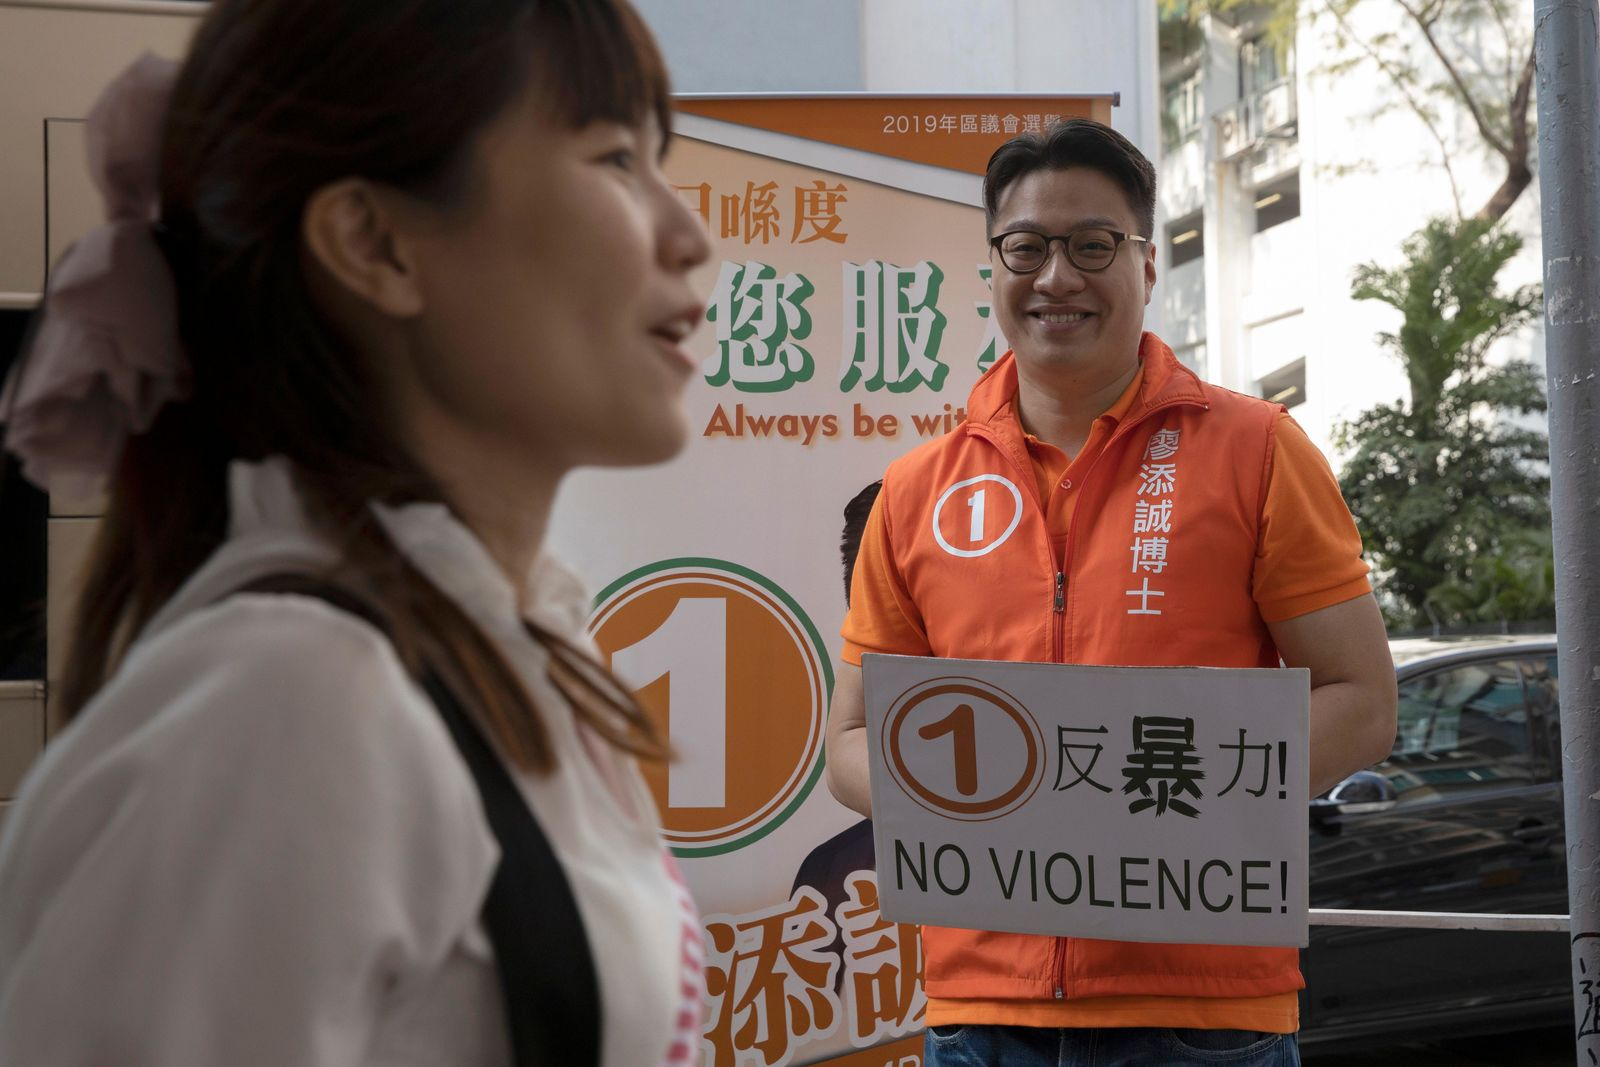 Independent candidate Dr. Liu Ting-Shing Marcus reacts as Clarisse Yeung of the KICKSTART Wan Chai party passes by during their campaigning in the Tai Hang constituency in Hong Kong on Saturday, Nov. 23, 2019. Sunday's low-level polls for district councillor have emerged as a pivotal bellwether on public support for increasingly violent protests, that had disrupted life in Asia's top financial hub for months. (AP Photo/Ng Han Guan)